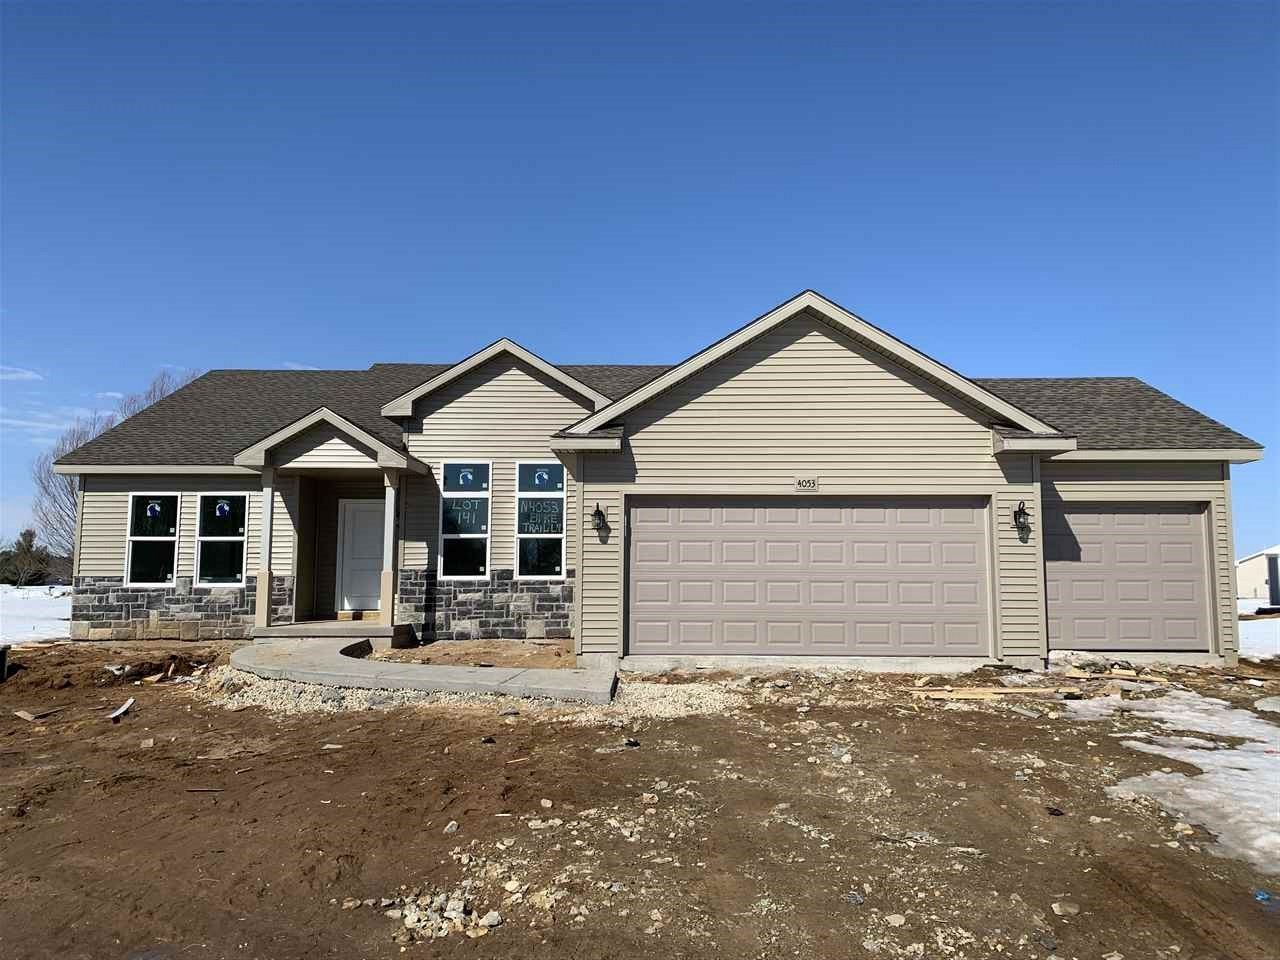 f_1910143 Our Listings at Best Realty of Edgerton